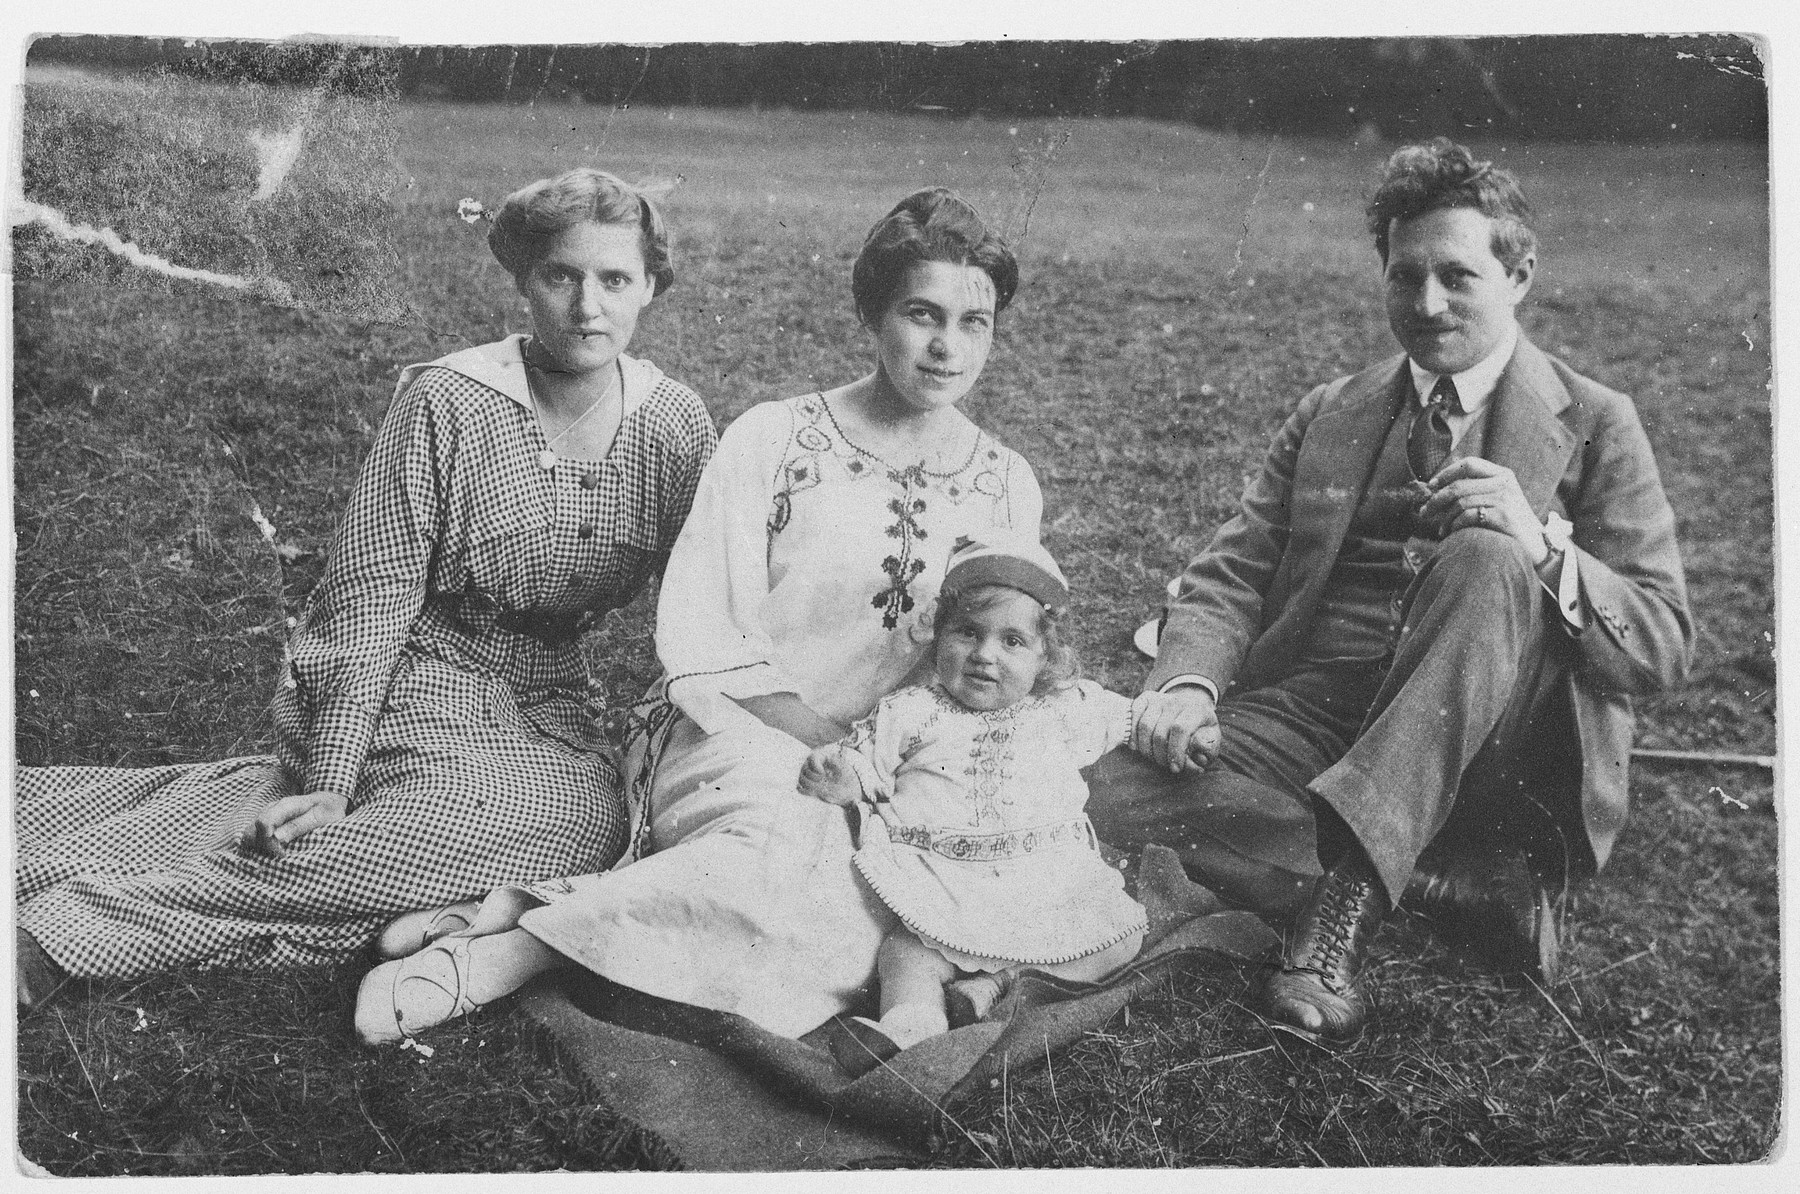 The Singer family poses for a portrait on a grassy field.  Pictured are a nanny, Gertrude, Margot and Kurt Singer.